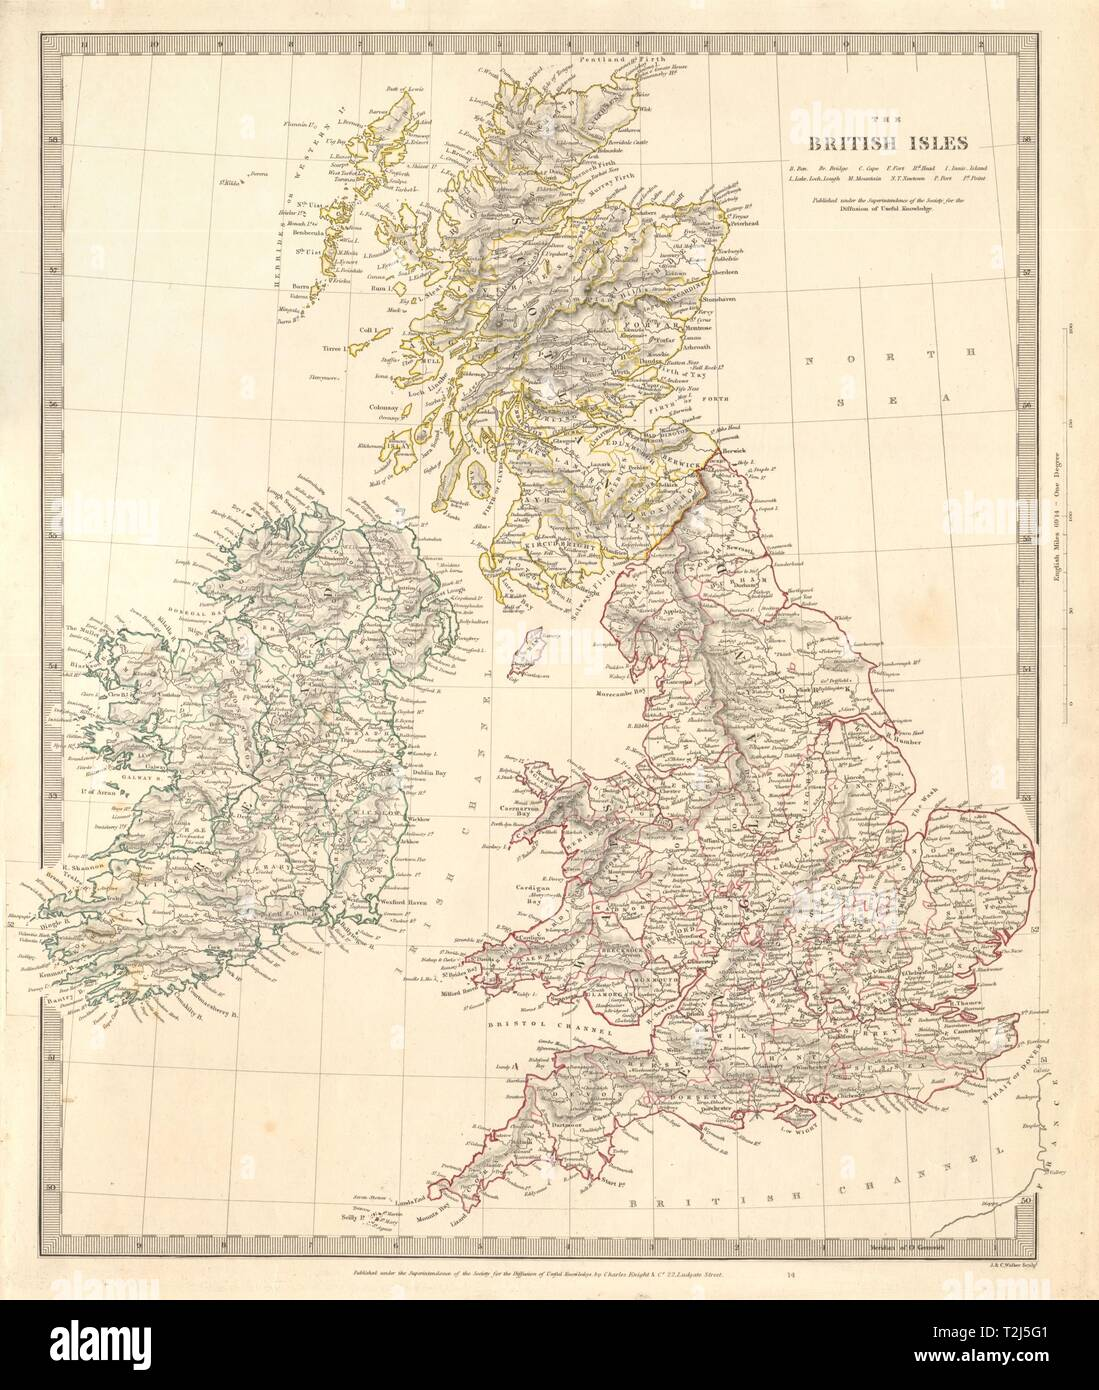 1845 in the United Kingdom